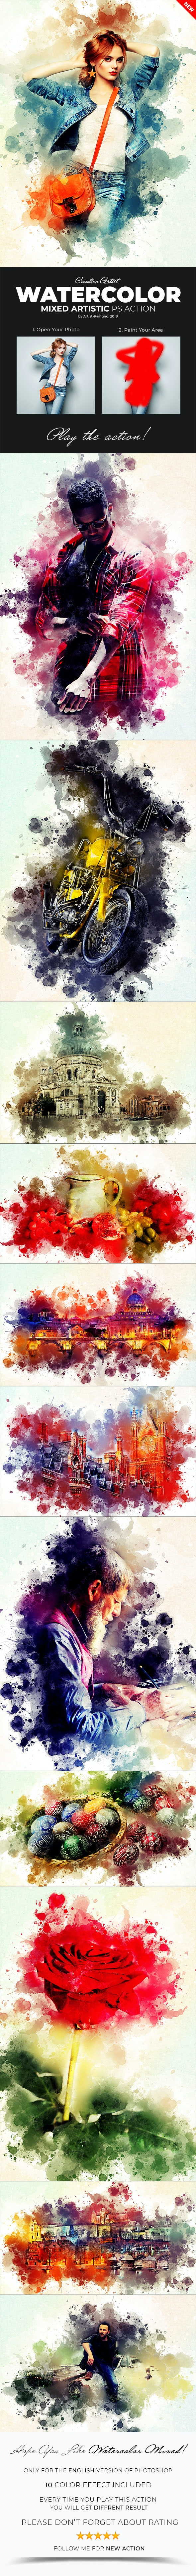 Watercolor Mixed Artistic Photoshop Action - Photo Effects Actions